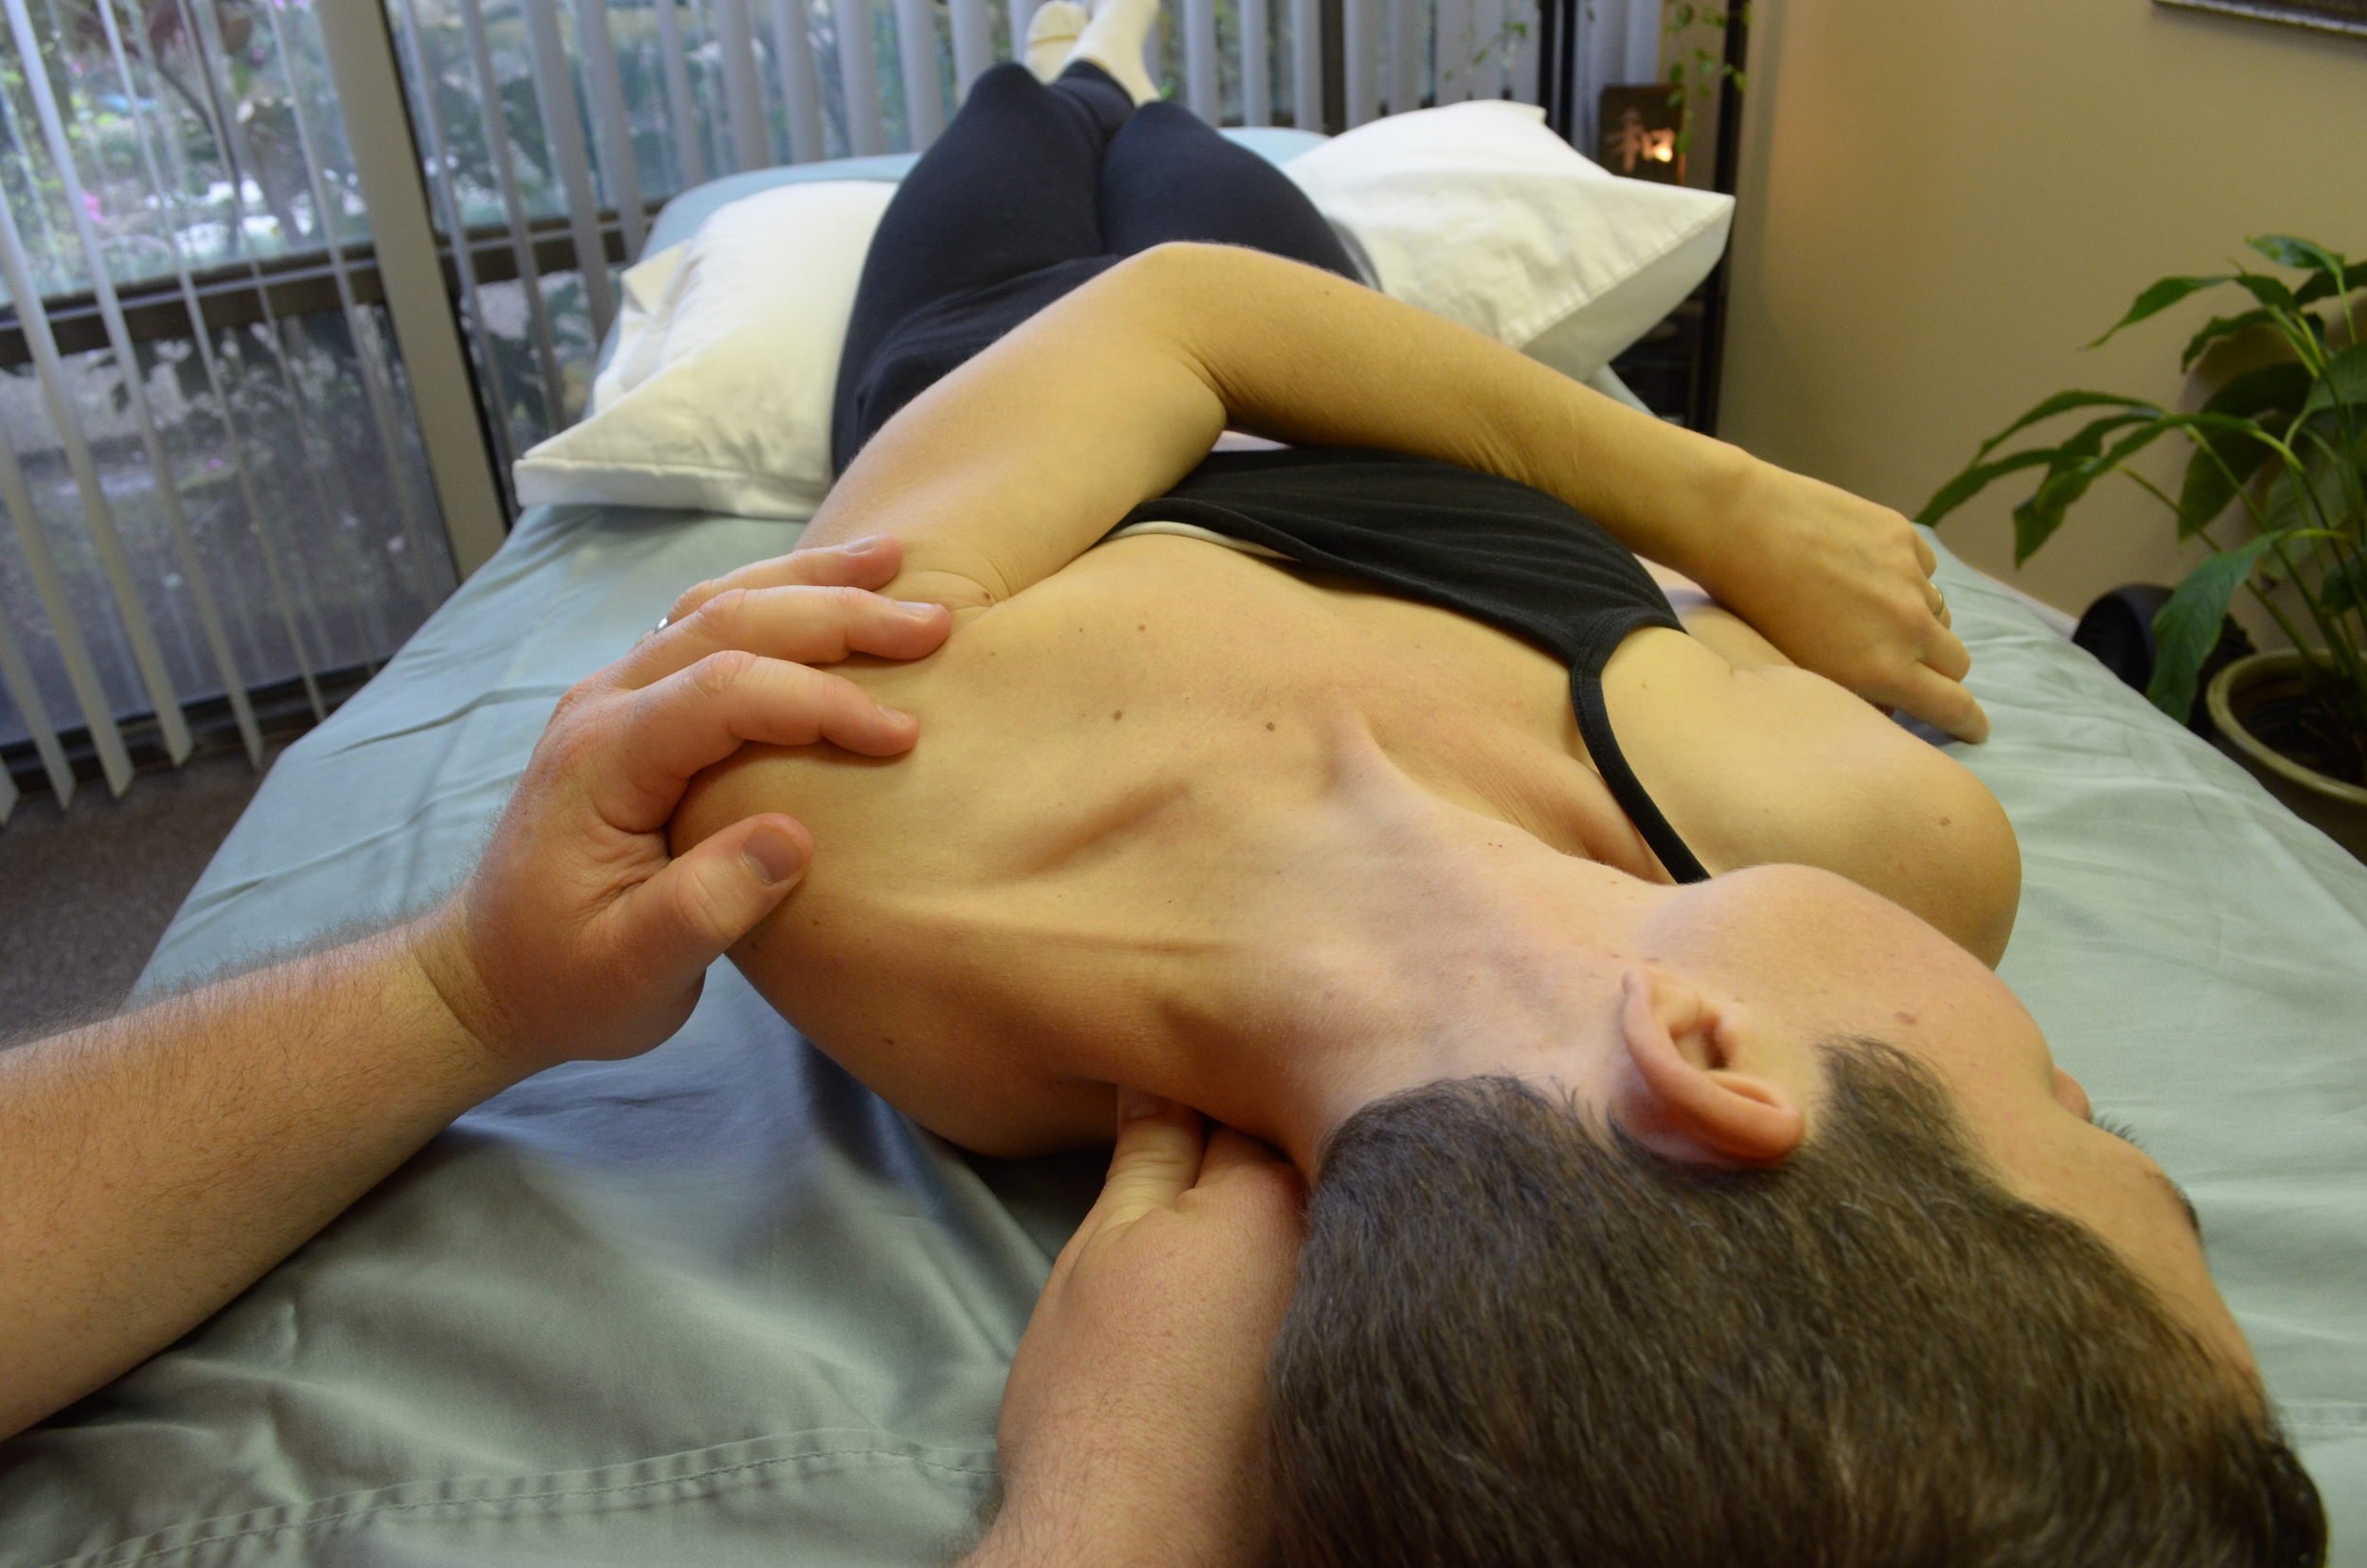 Levator Scapula Active Movement & Positional Release. Getting rid of those pesky headaches! Great deep tissue massage technique in orlando, florida